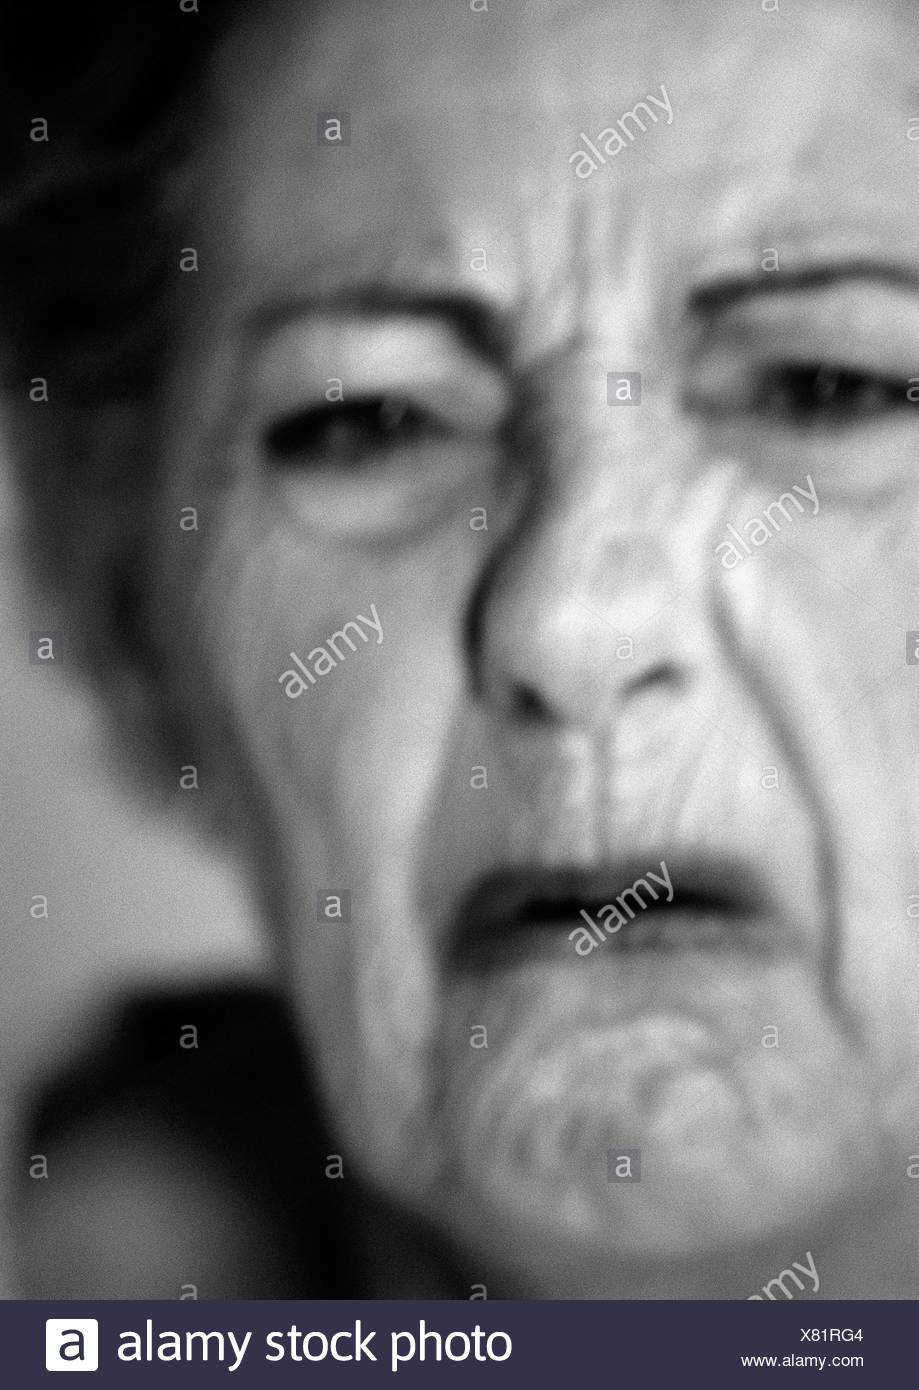 Senior woman frowning, close-up, portrait, b&w - Stock Image